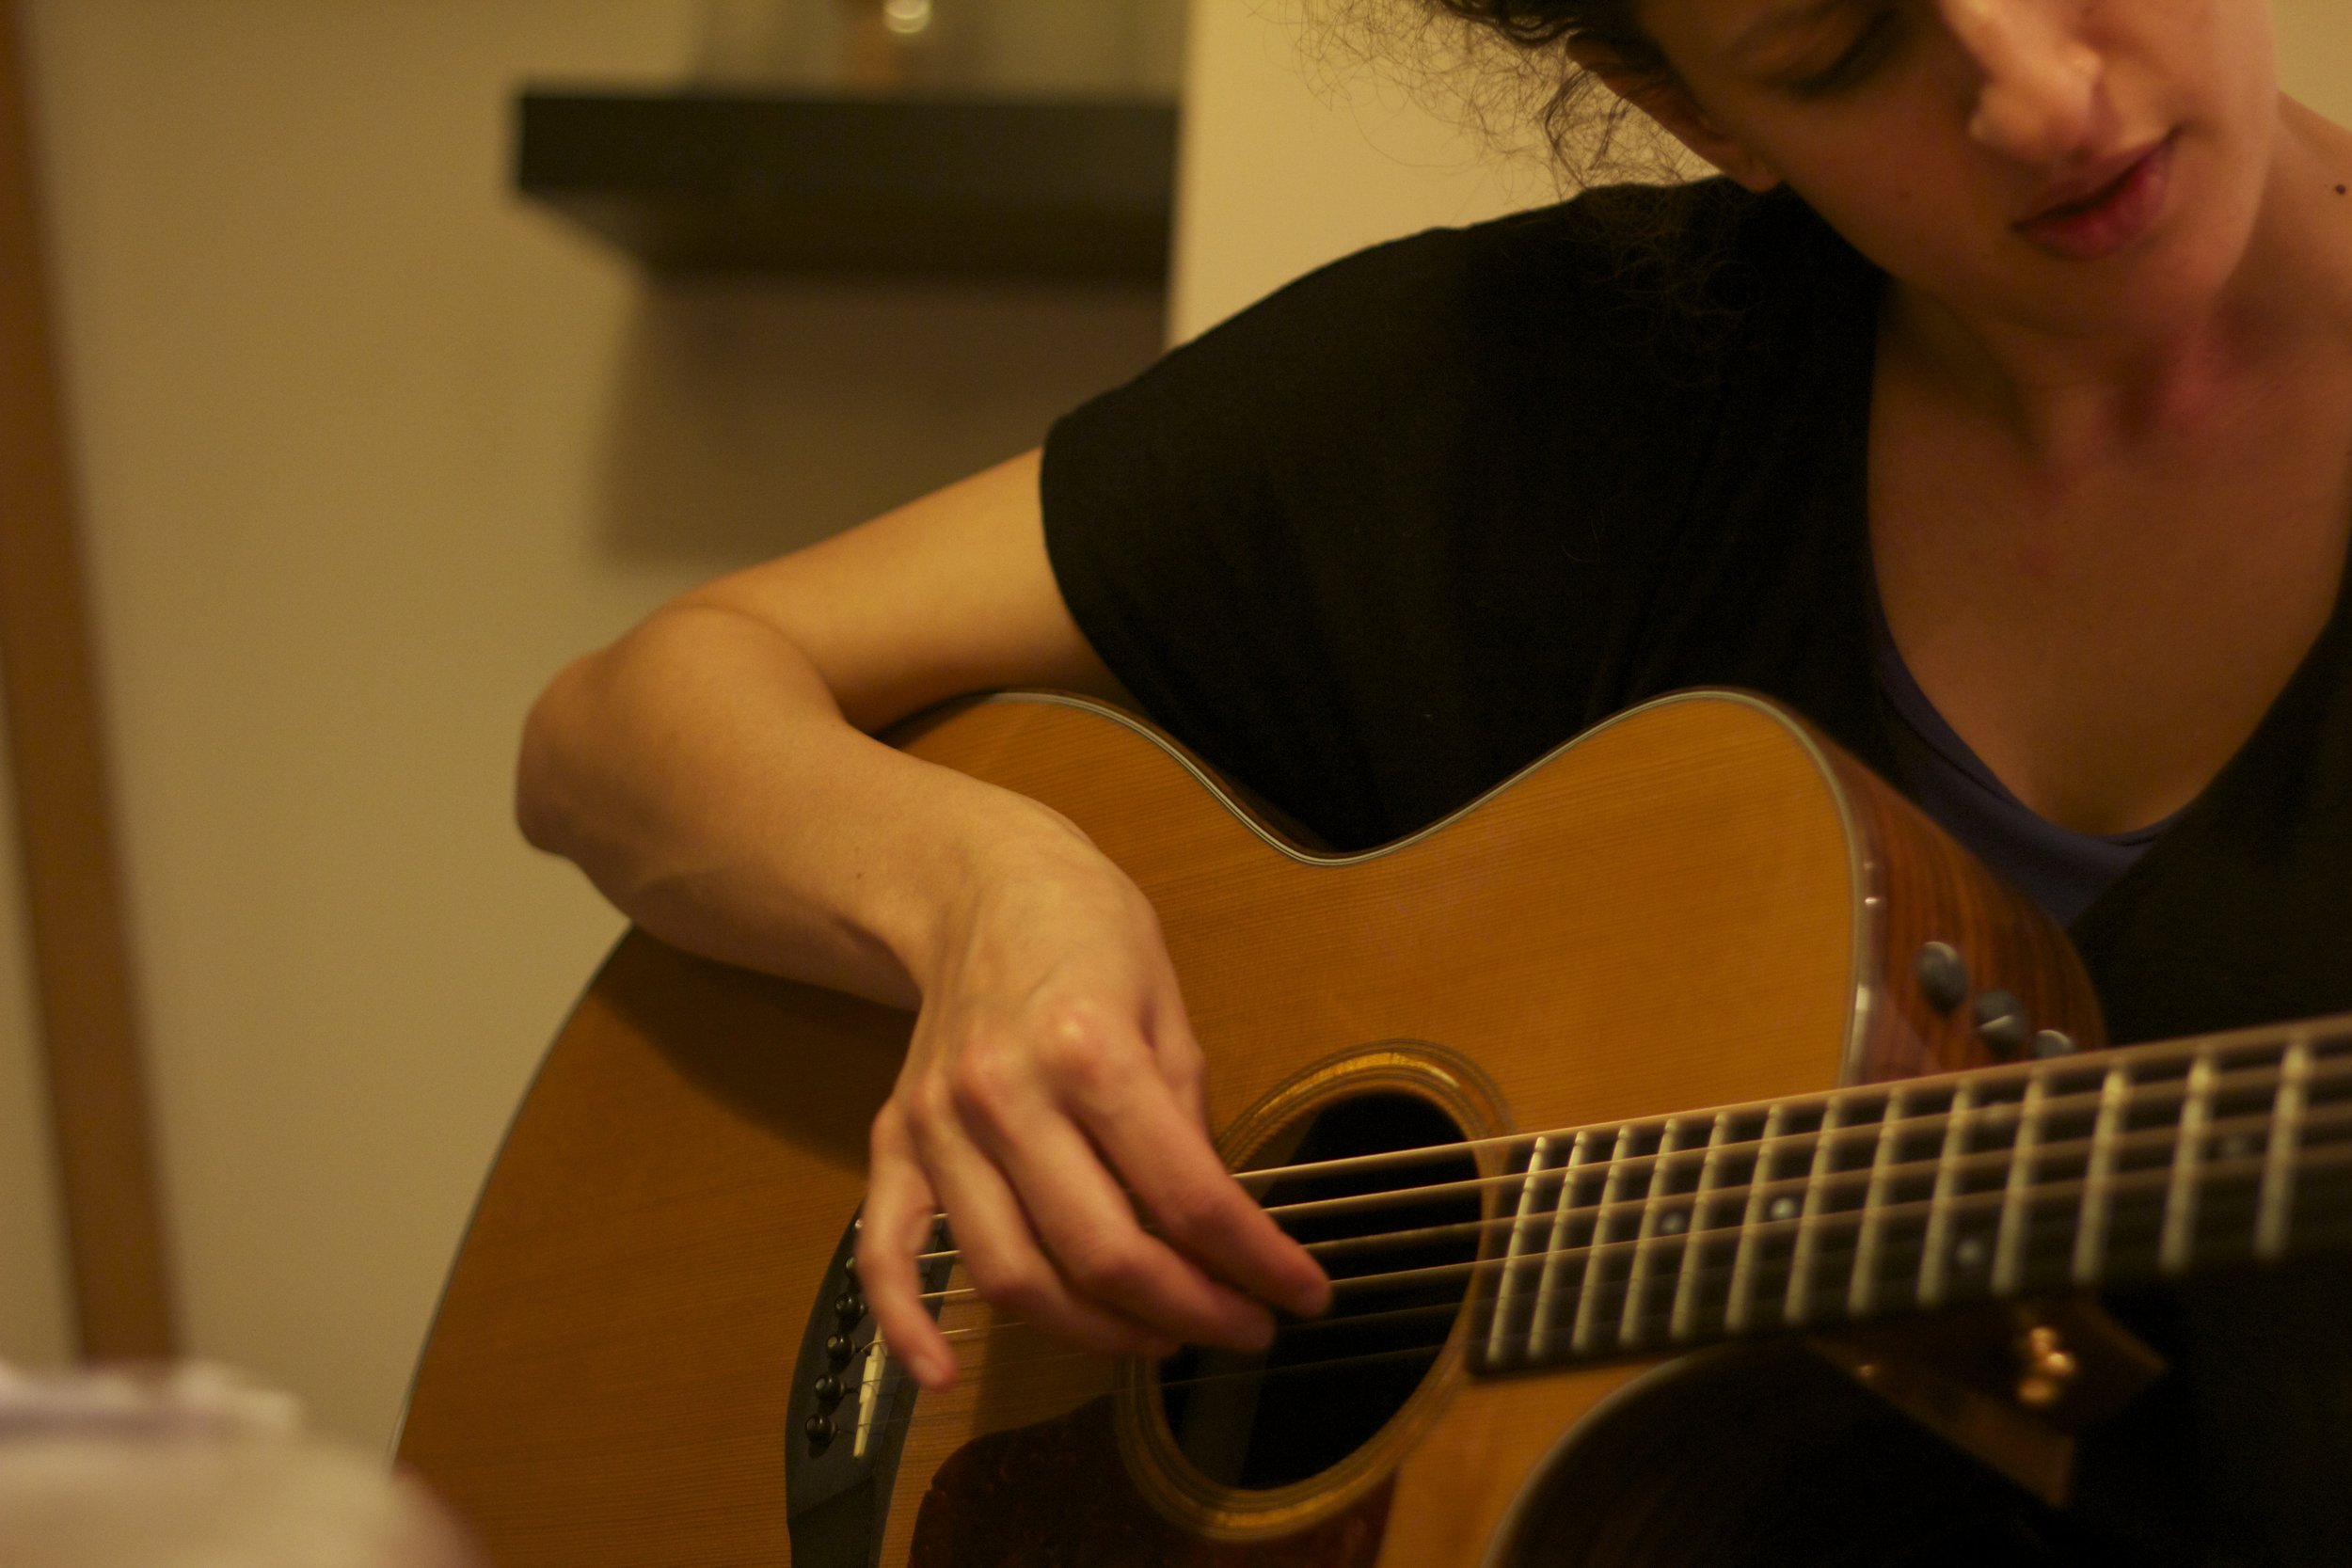 """Songwriting - """"Songs I have written for me, for others, to brief..."""""""